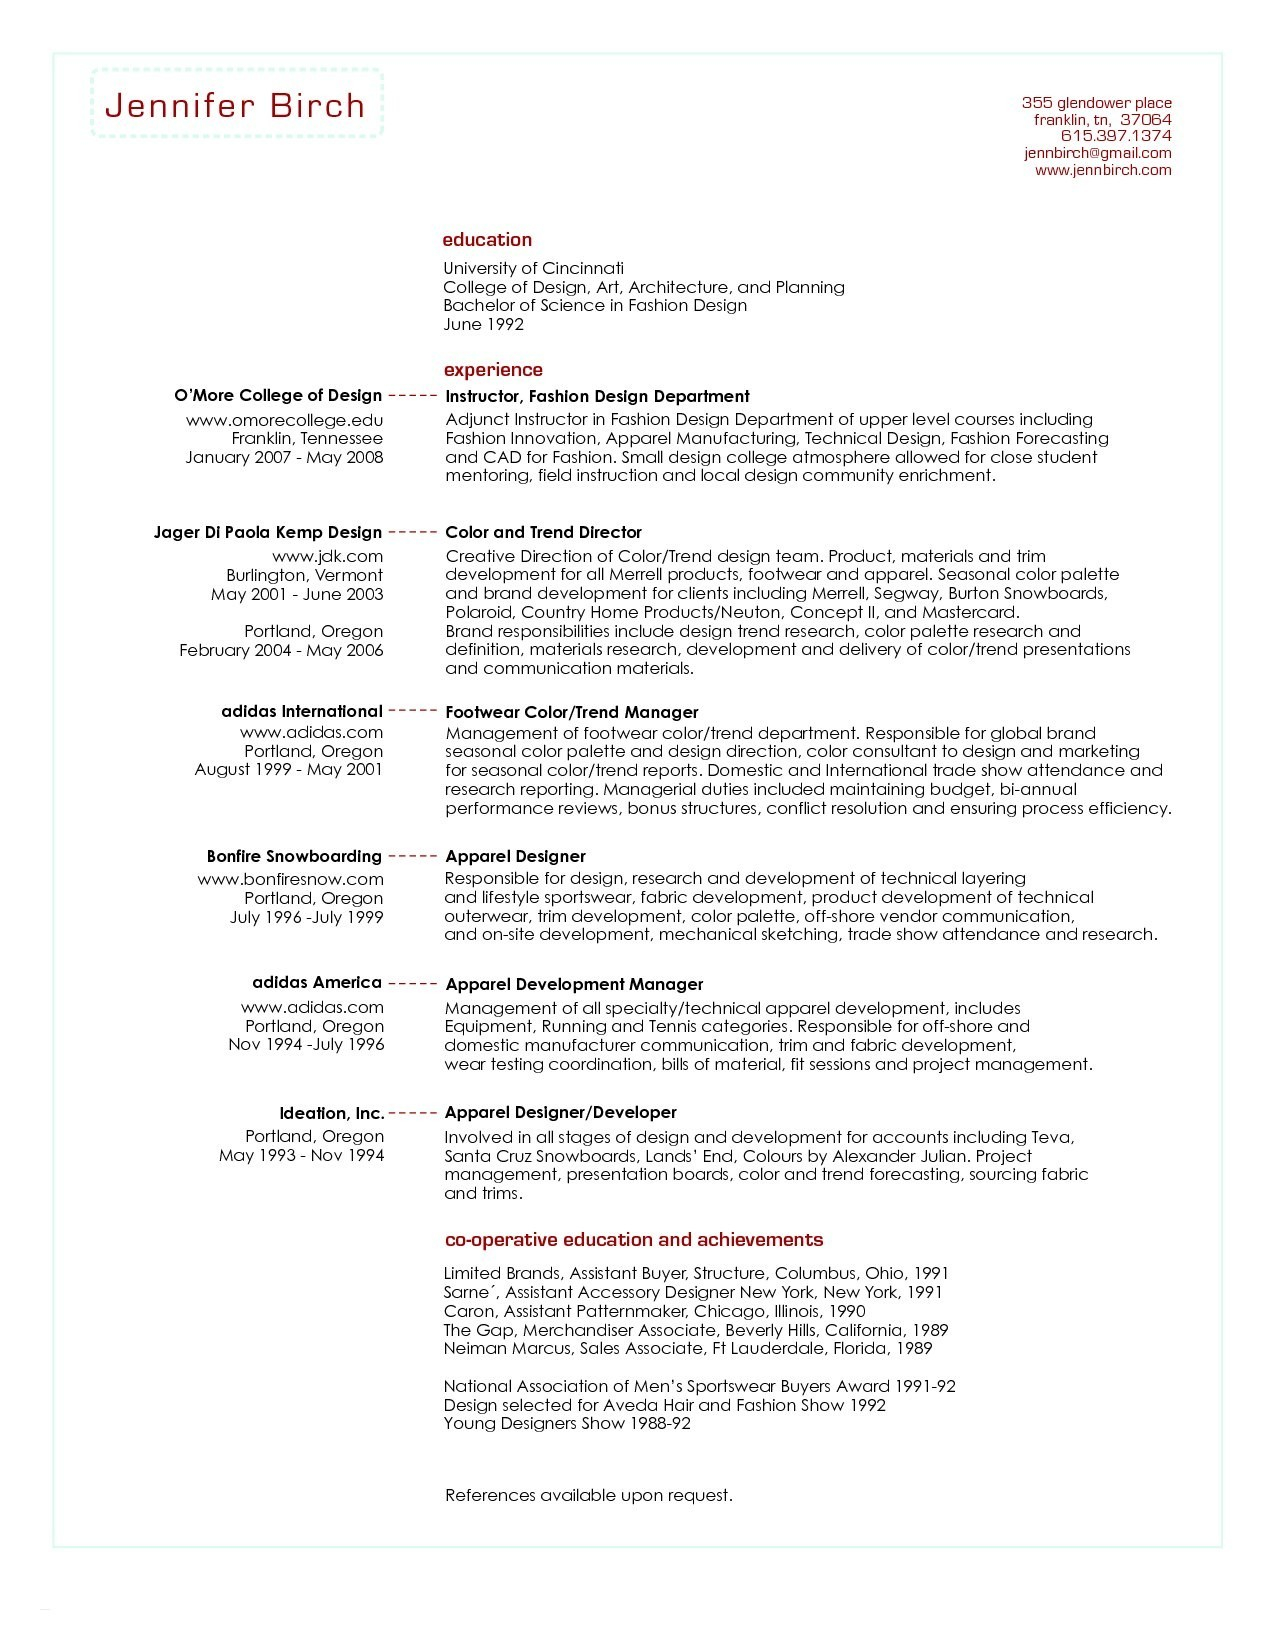 Resume for Retail Store - Sample Sales Management Resume New Retail Store Manager Resume Best